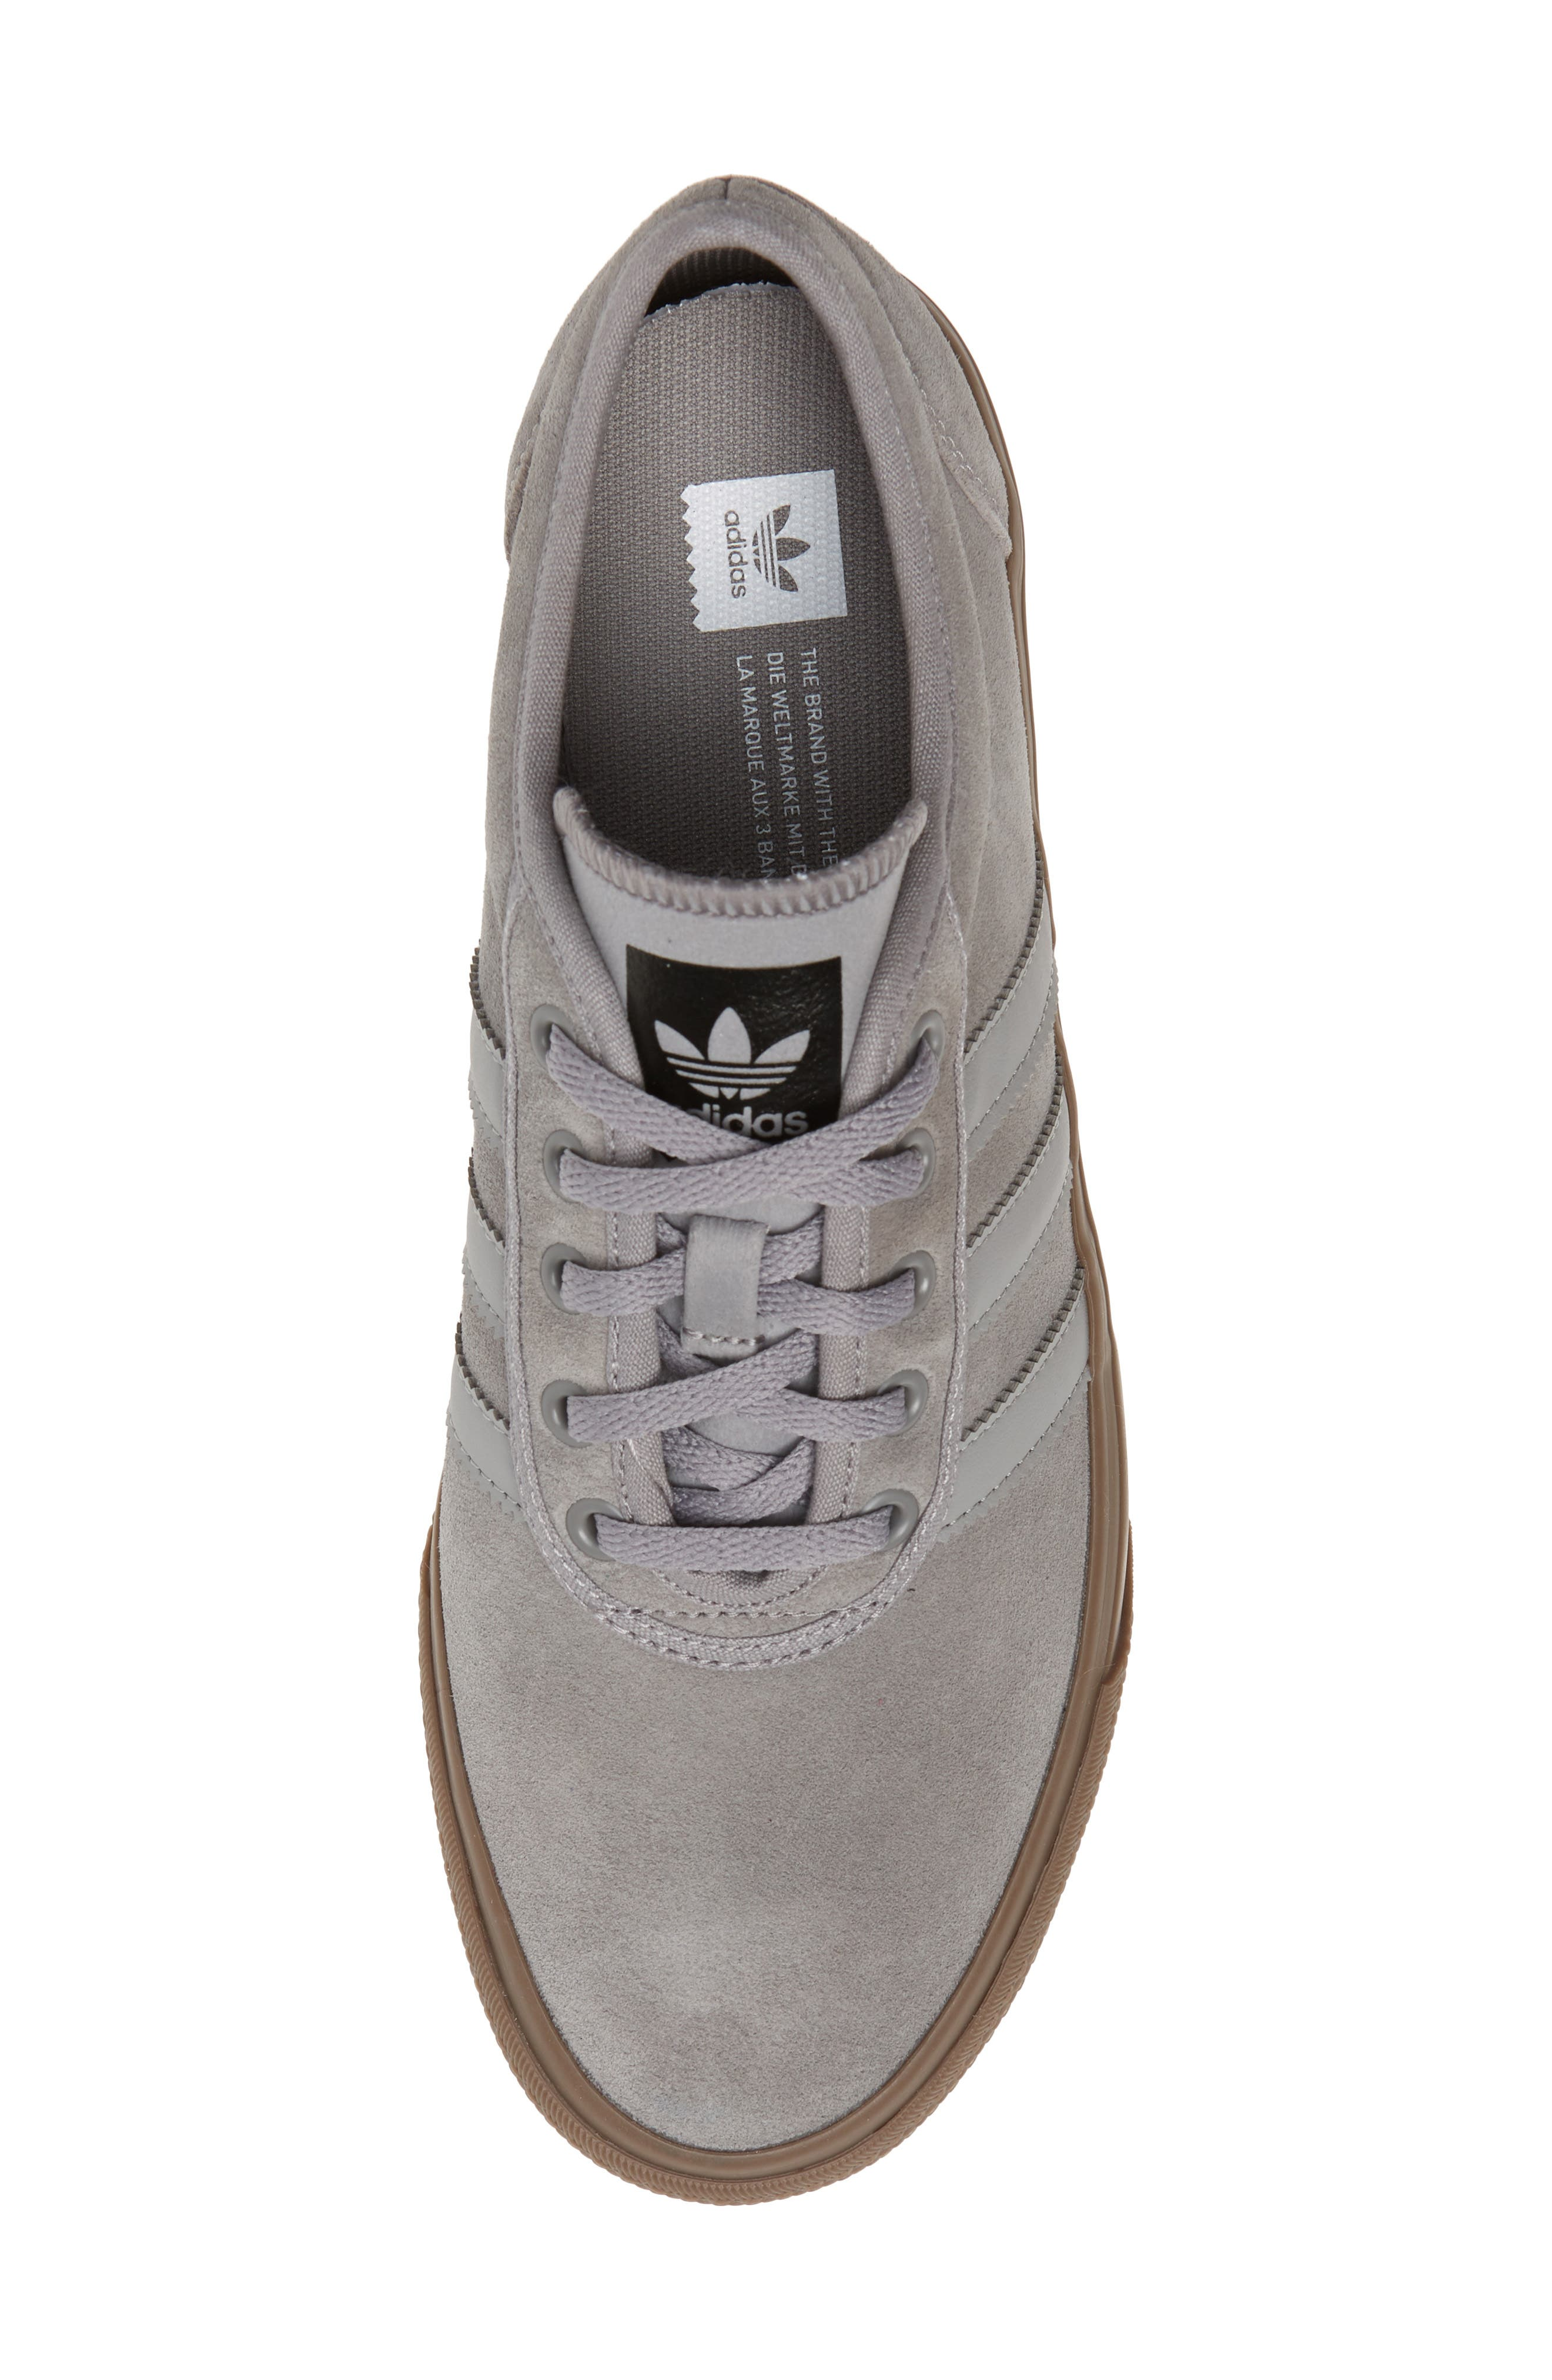 Adiease Skate Sneaker,                             Alternate thumbnail 5, color,                             SOLID GREY/ SOLID GREY/ GUM